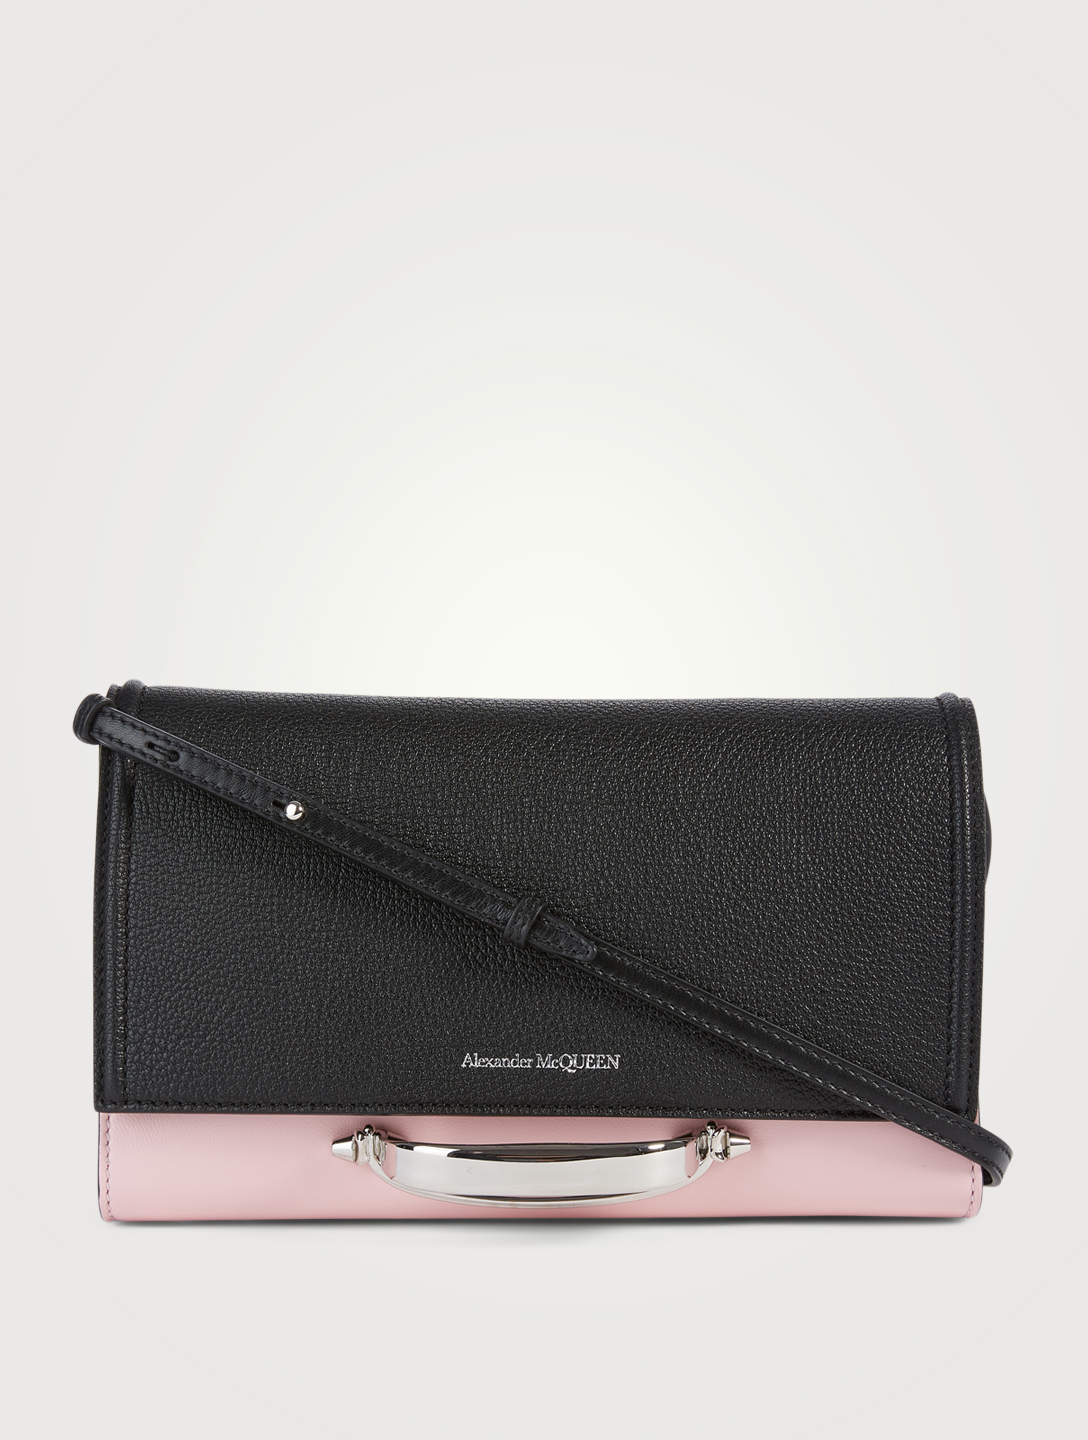 ALEXANDER MCQUEEN Small The Story Leather Crossbody Bag Women's Black